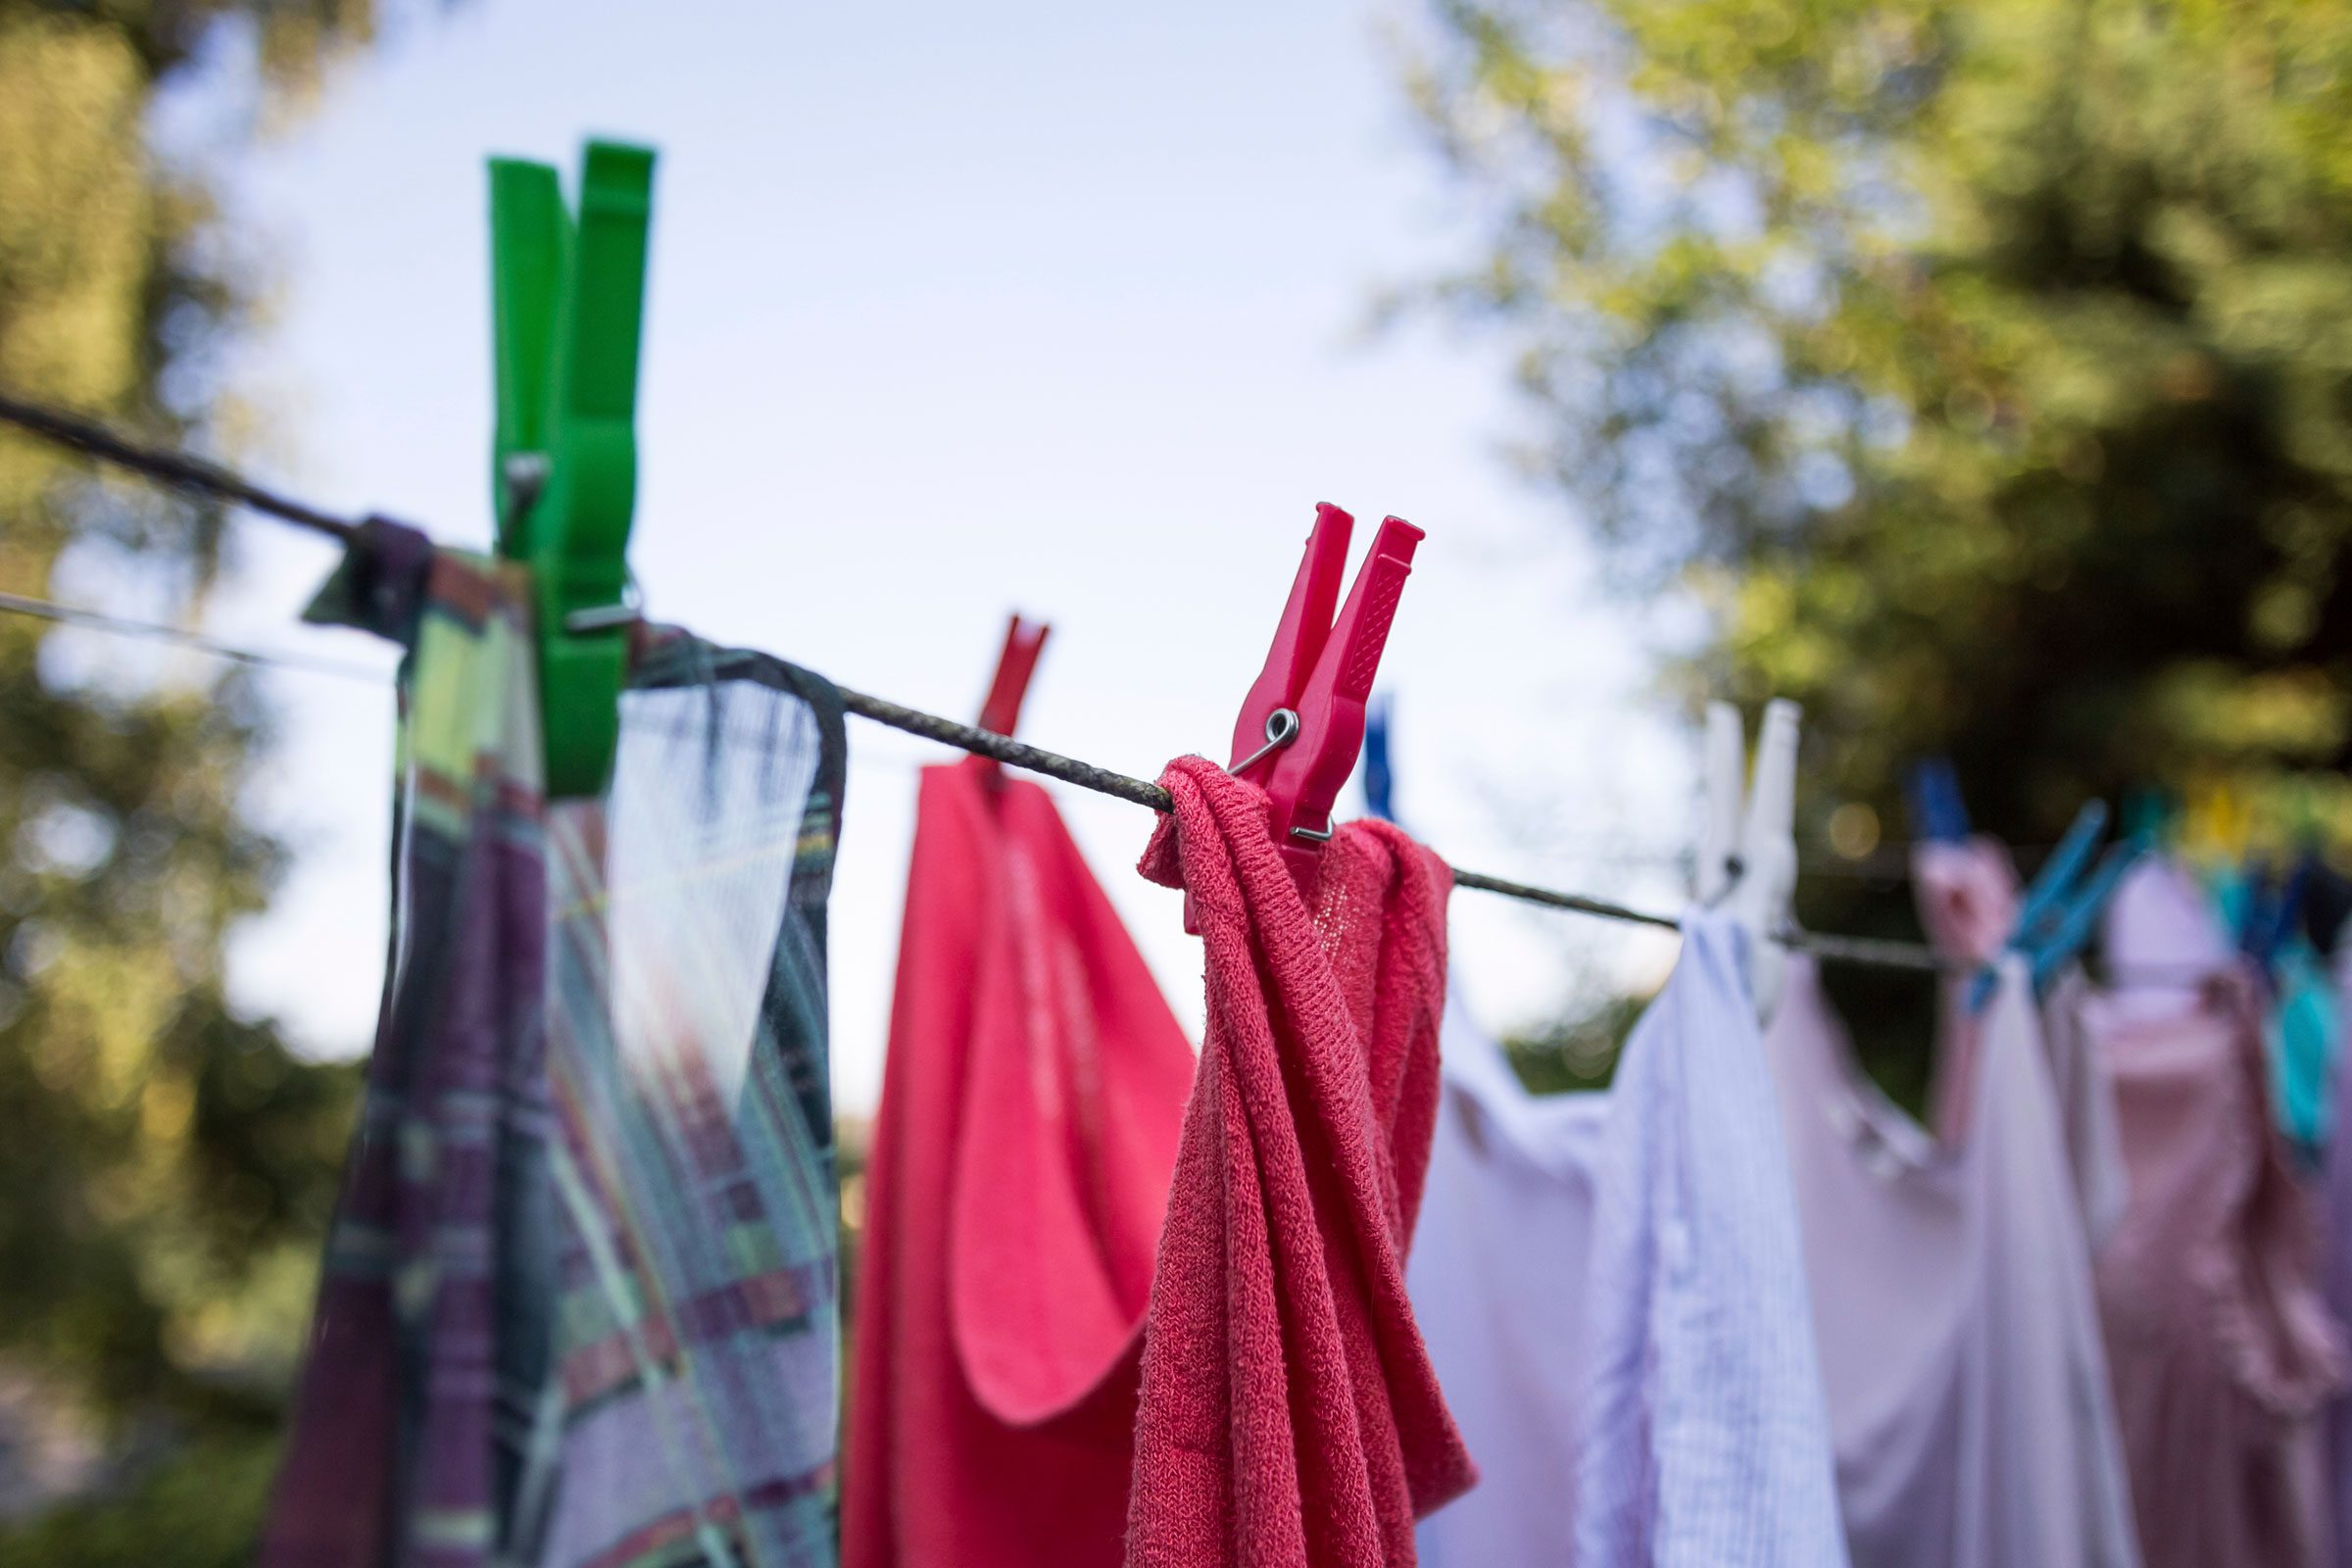 How to make clothes smell good in dryer